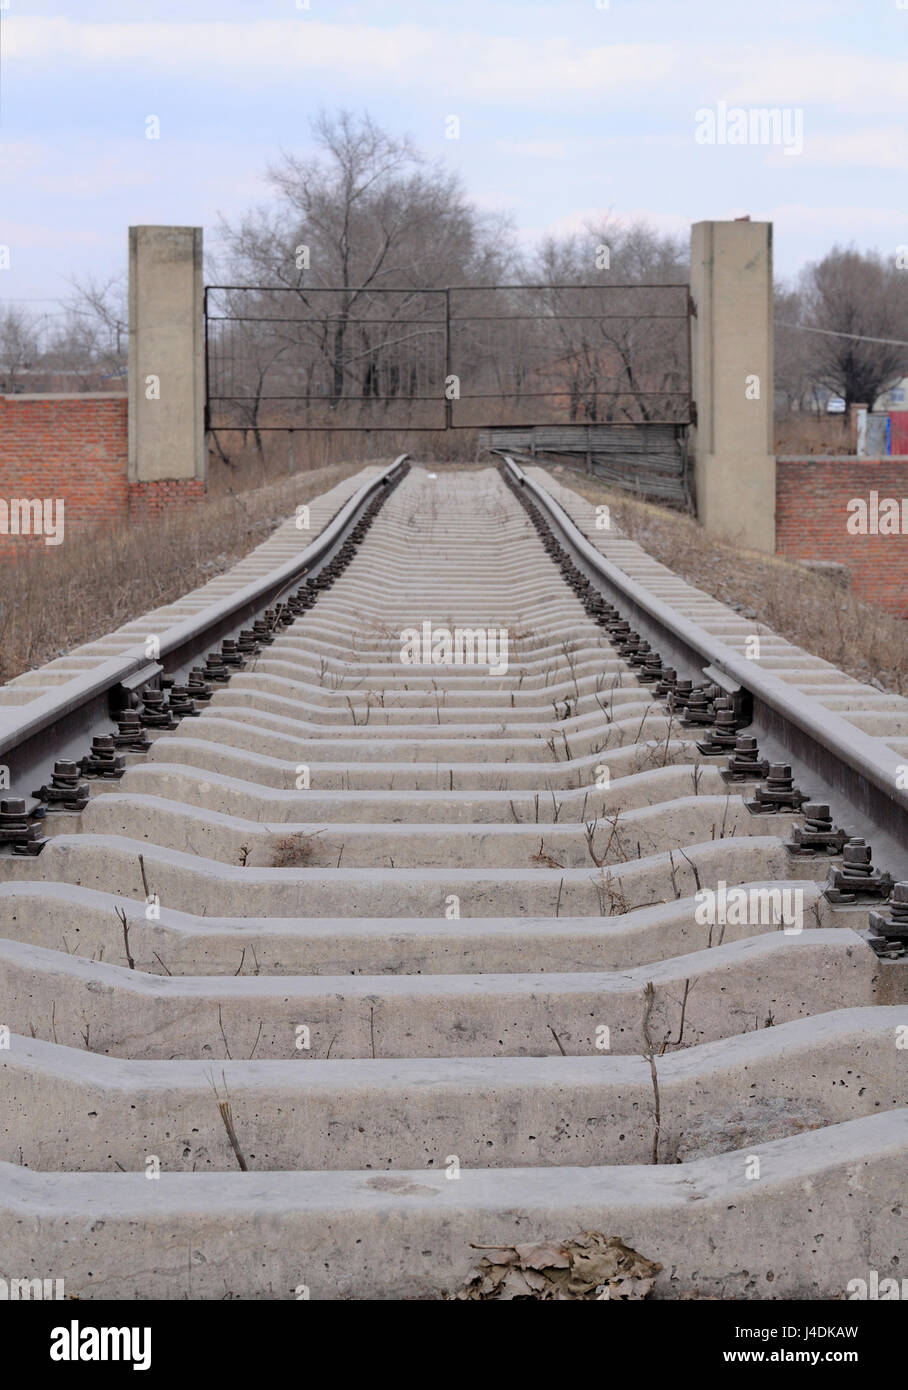 Railroad tracks leading to a metal gate in the city of Zhaodong China in Heilongjiang Province on an overcast day. - Stock Image